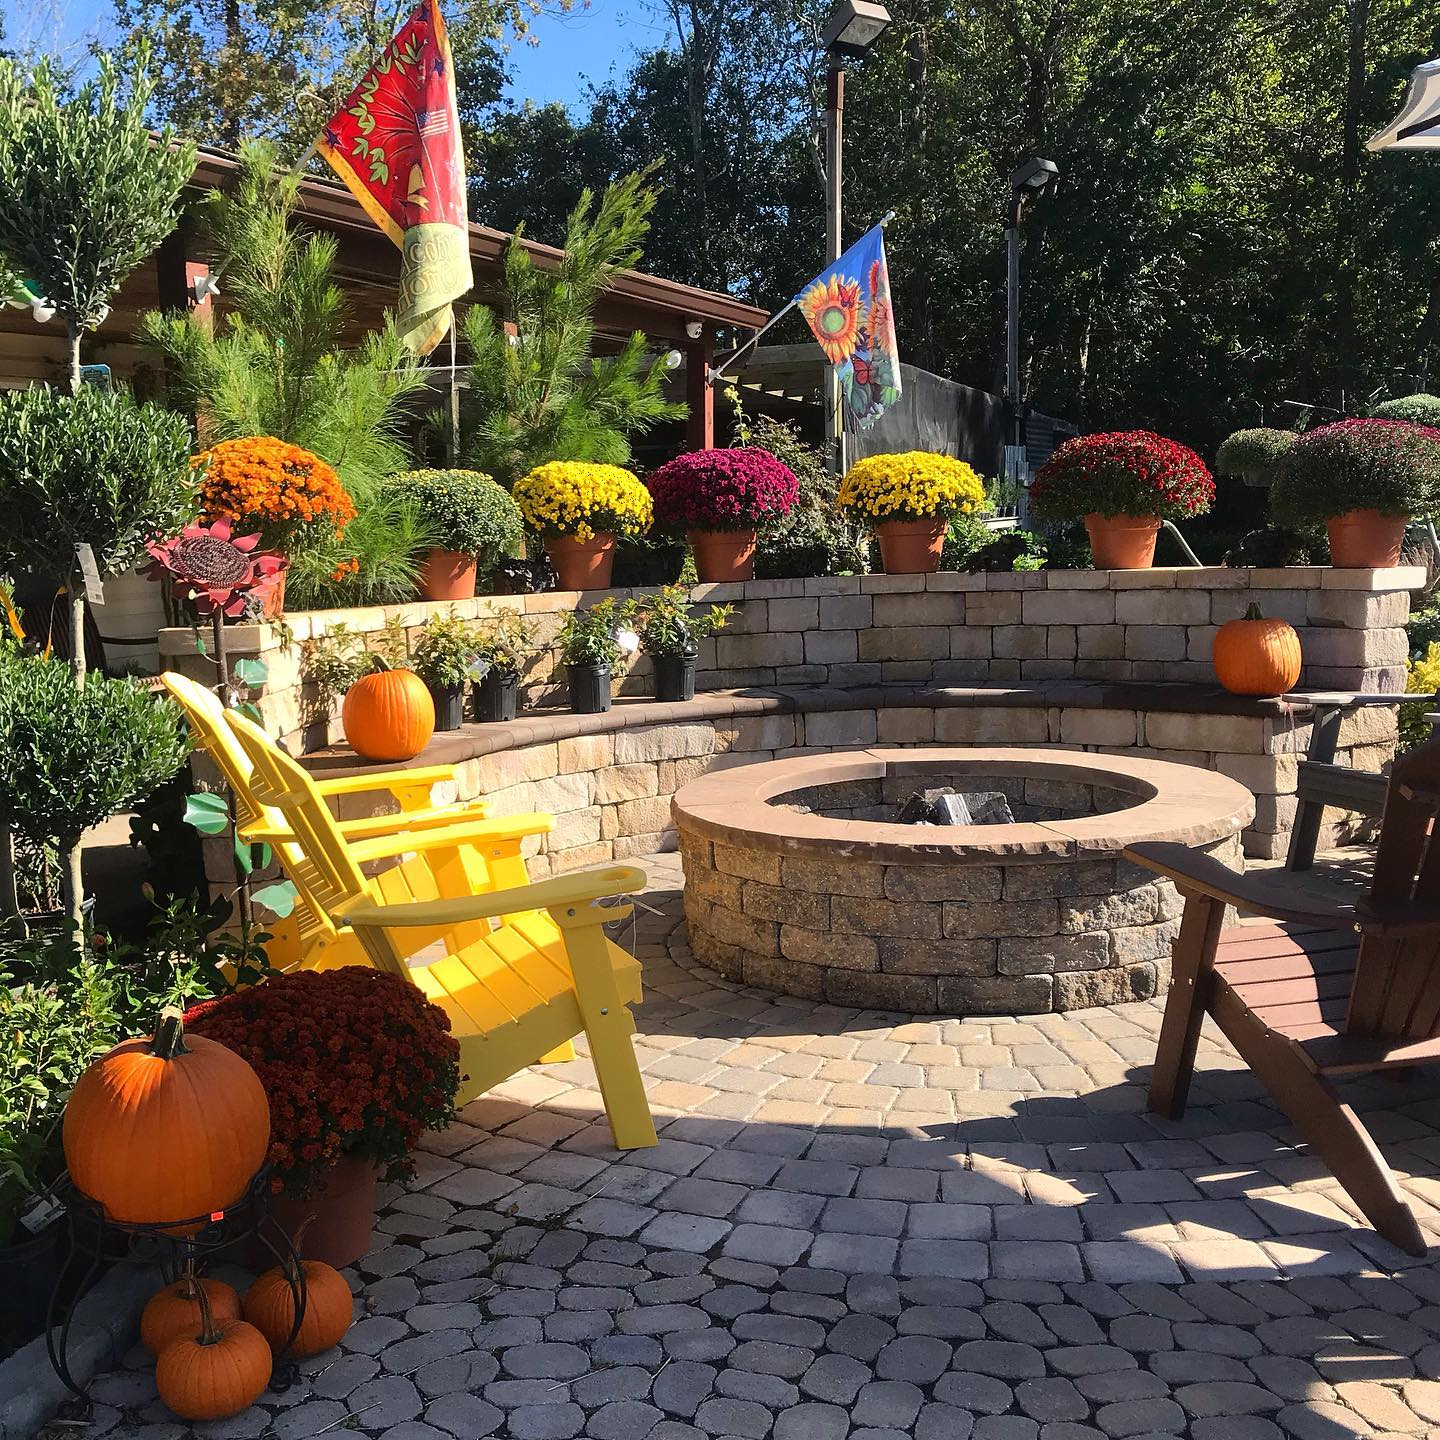 fall time at Jack Frost garden center